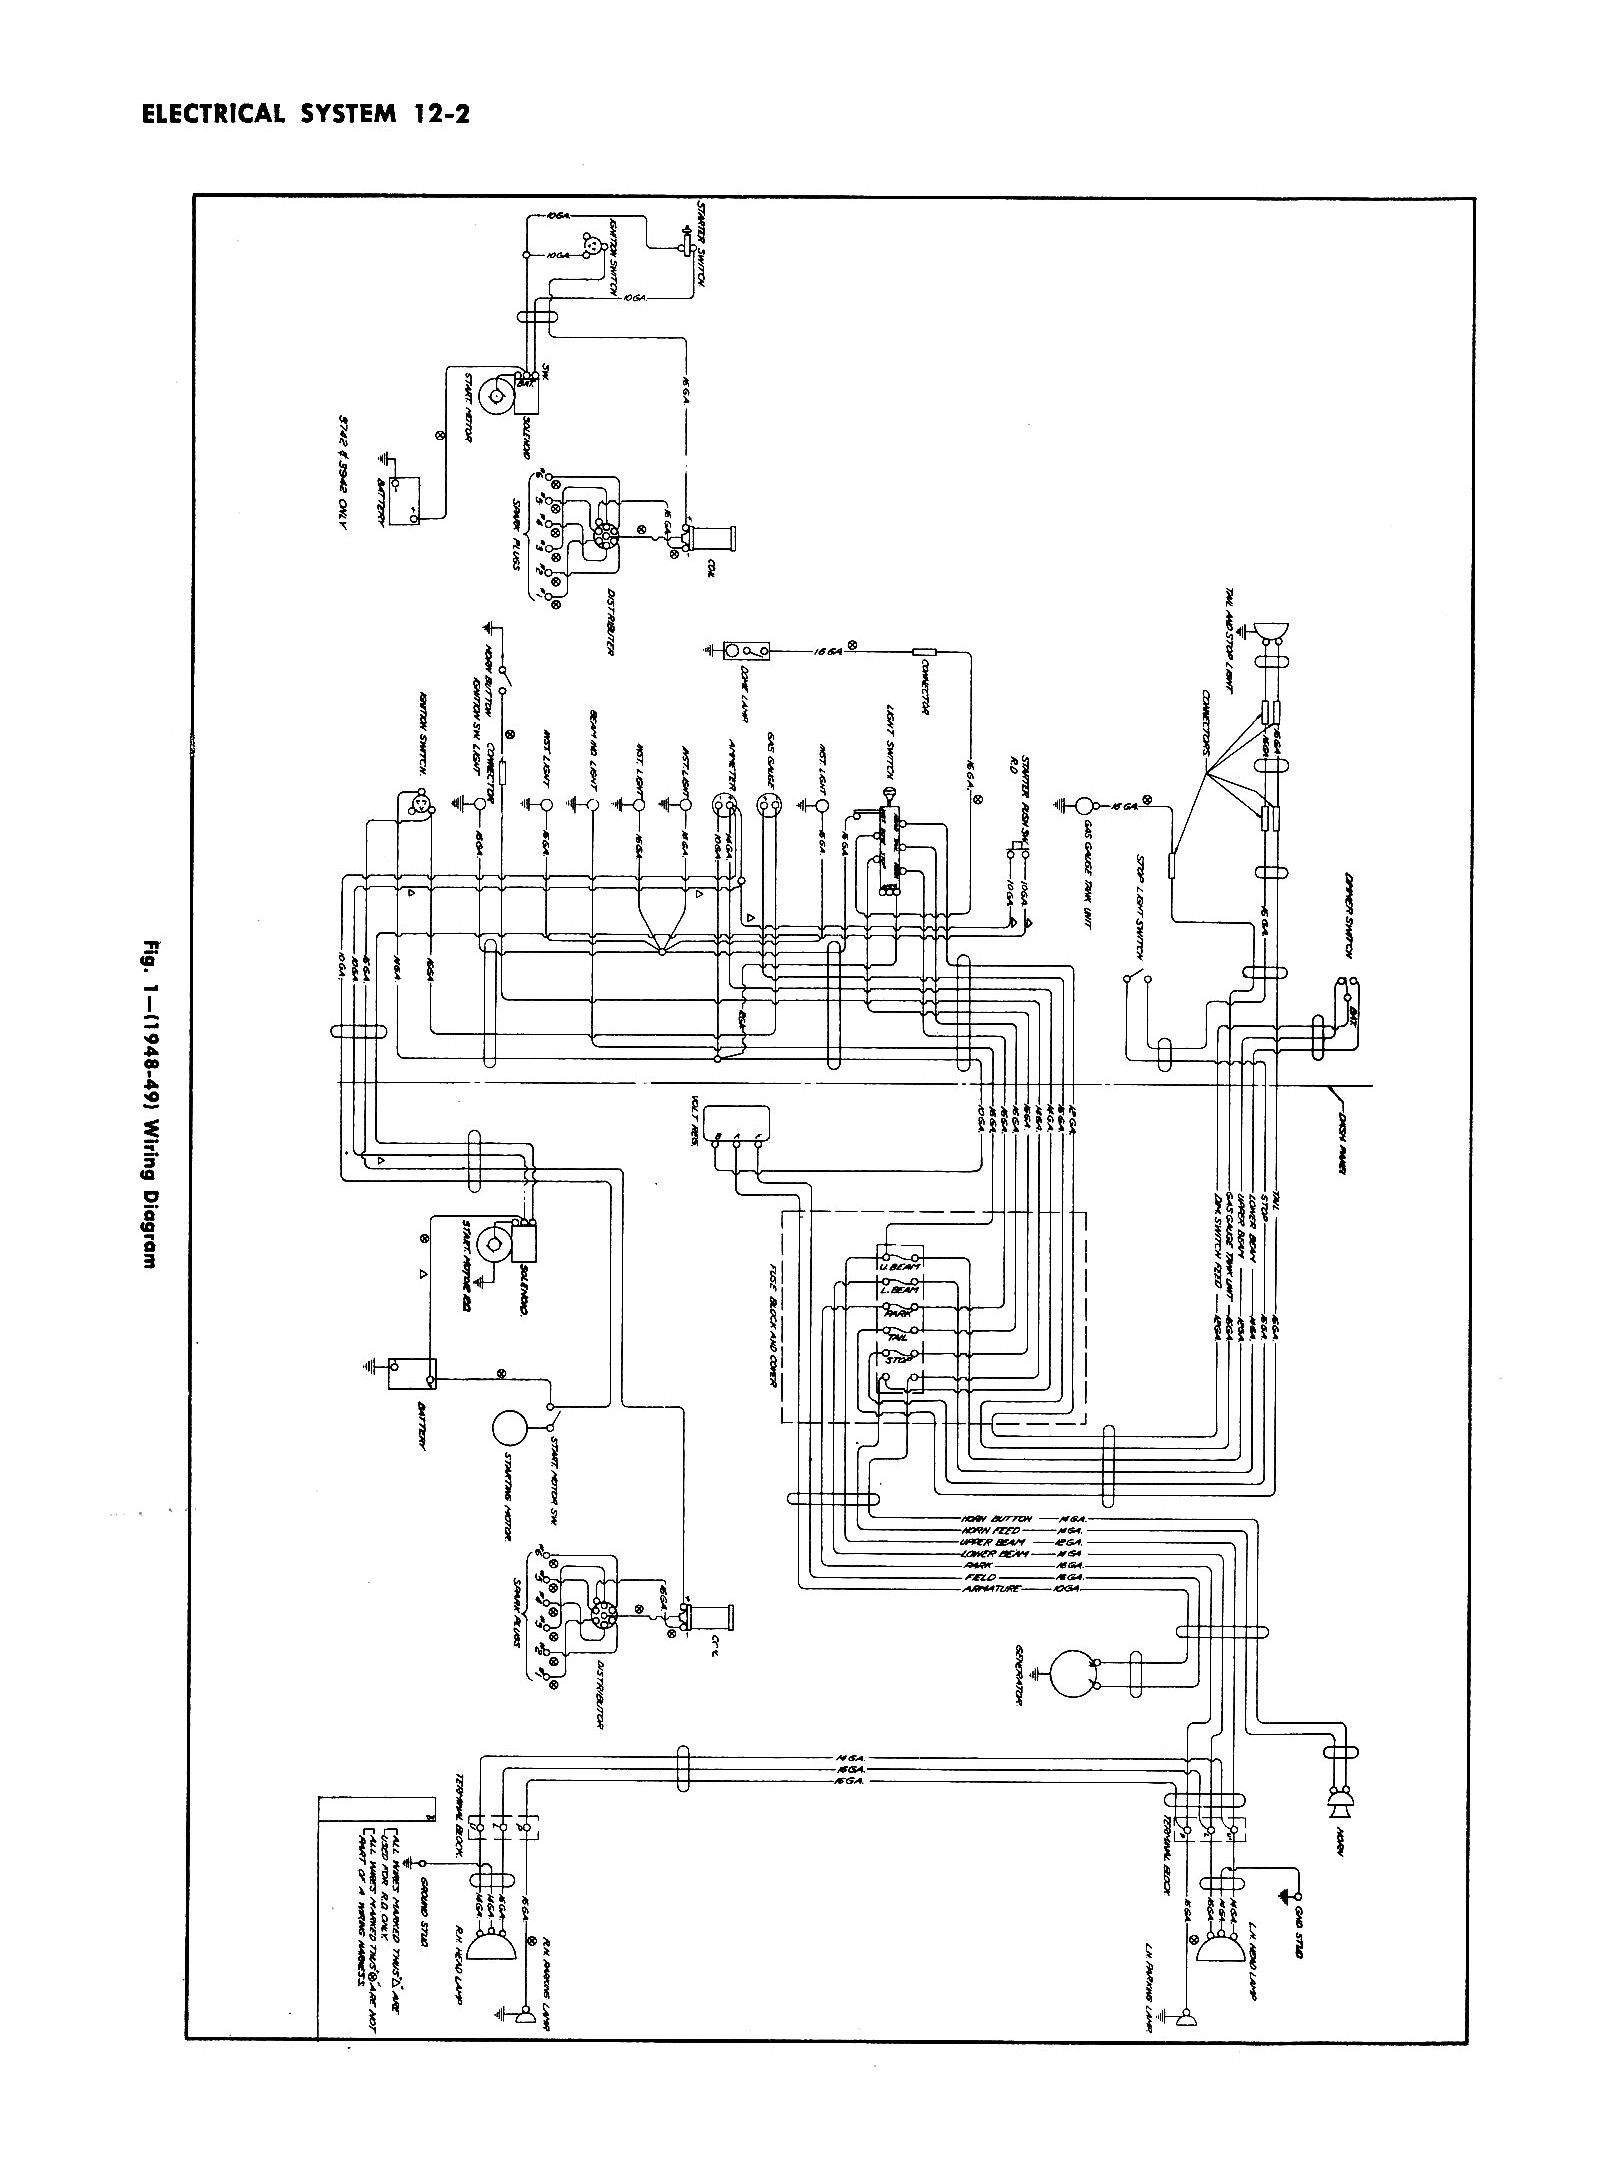 Chevy Wiring Diagrams Diagram For 1964 Chevrolet 6 And V8 Biscayne Belair Impala Part 2 1949 Truck